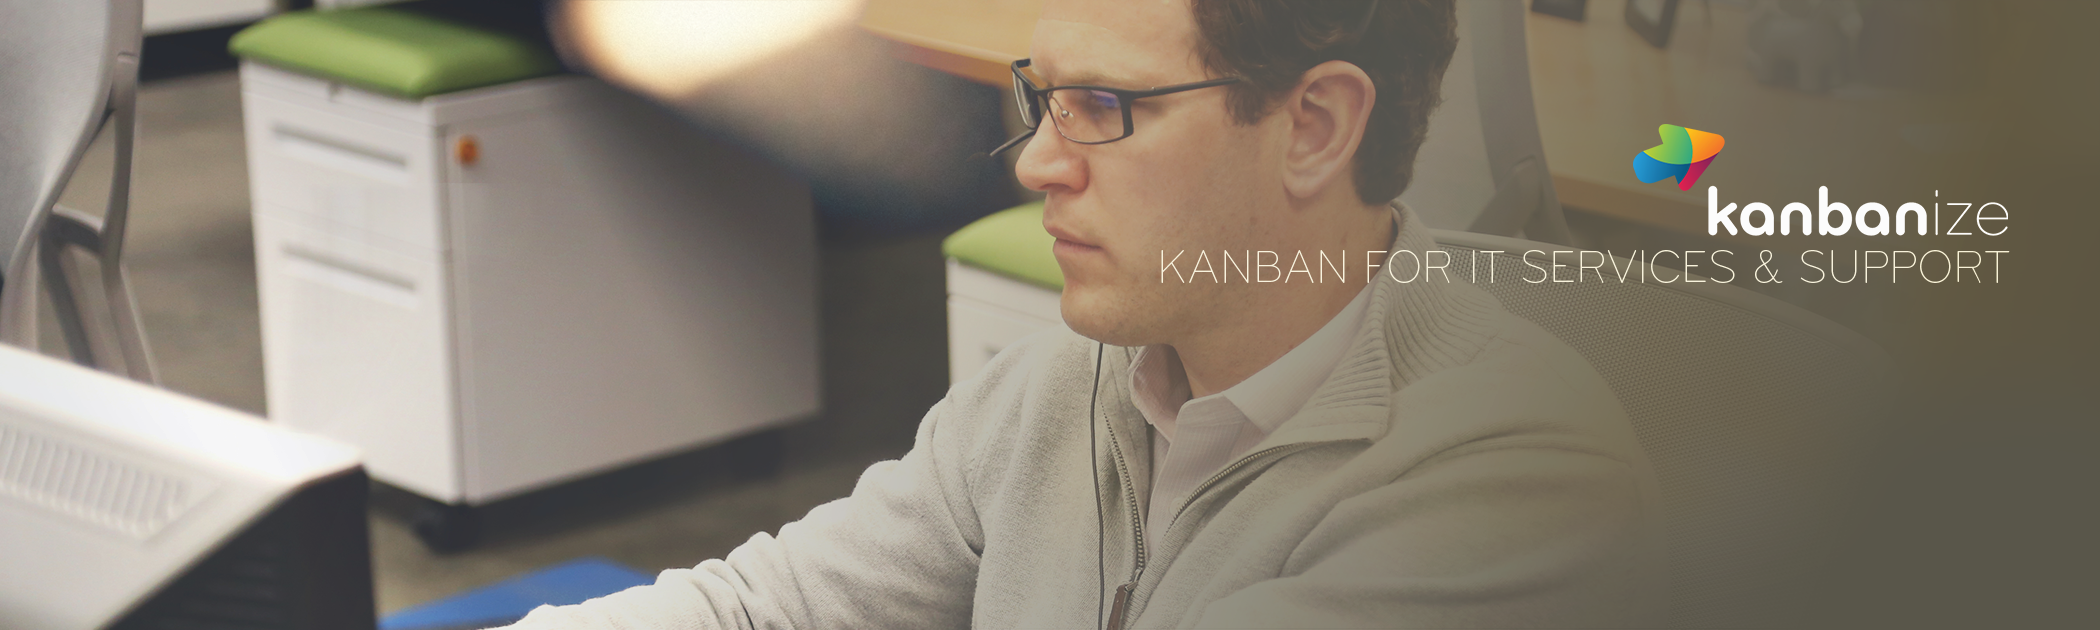 Kanban software for IT services